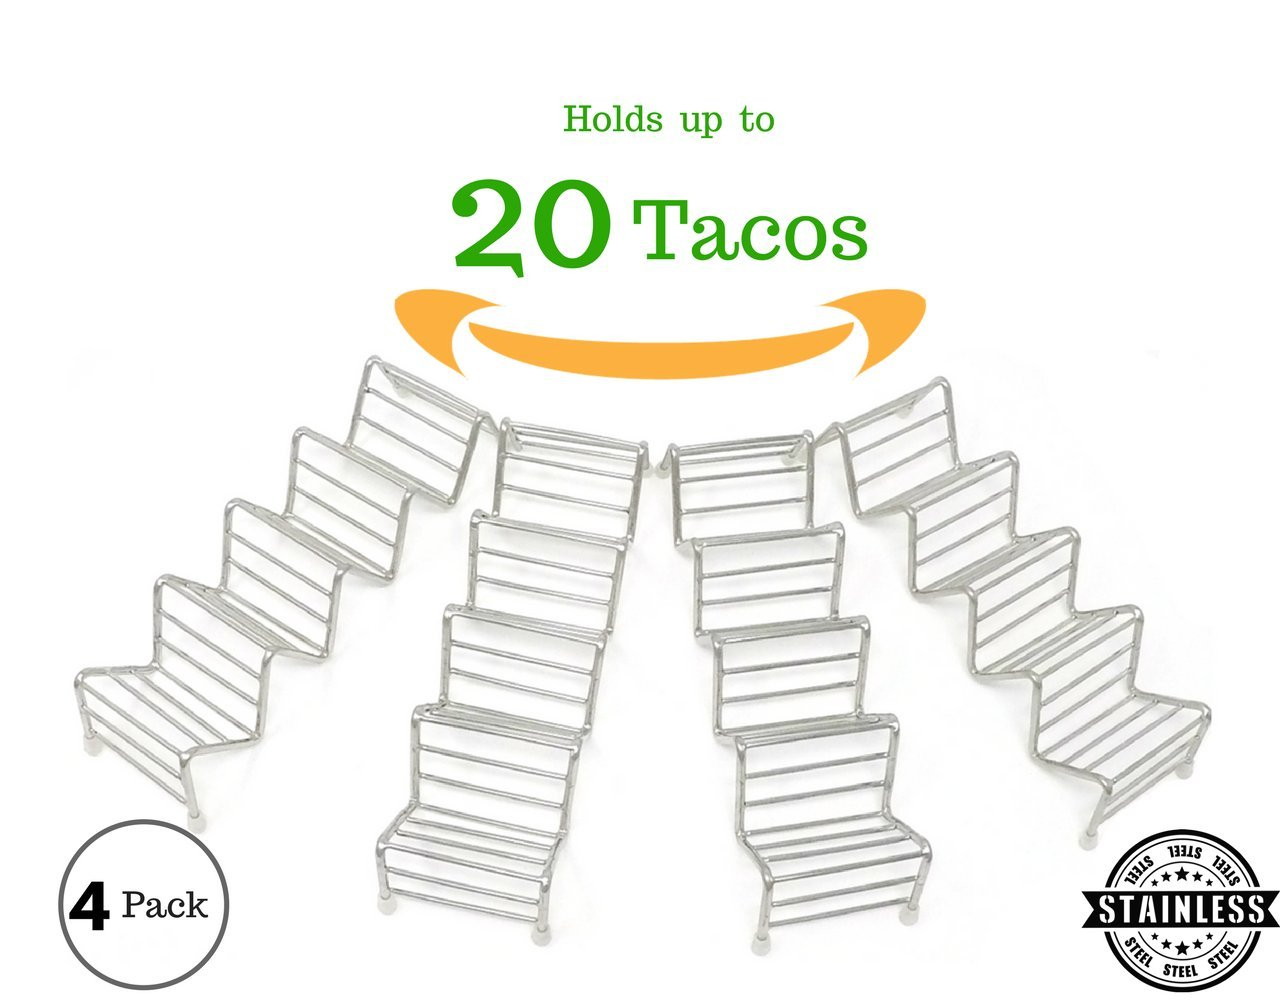 "Taco Huyaco Rack, Taco Holder, Taco Stand | Holds up to 20 Tacos - Soft or Hard Shell | Premium Quality 304 Stainless Steel (8.5"" long) 